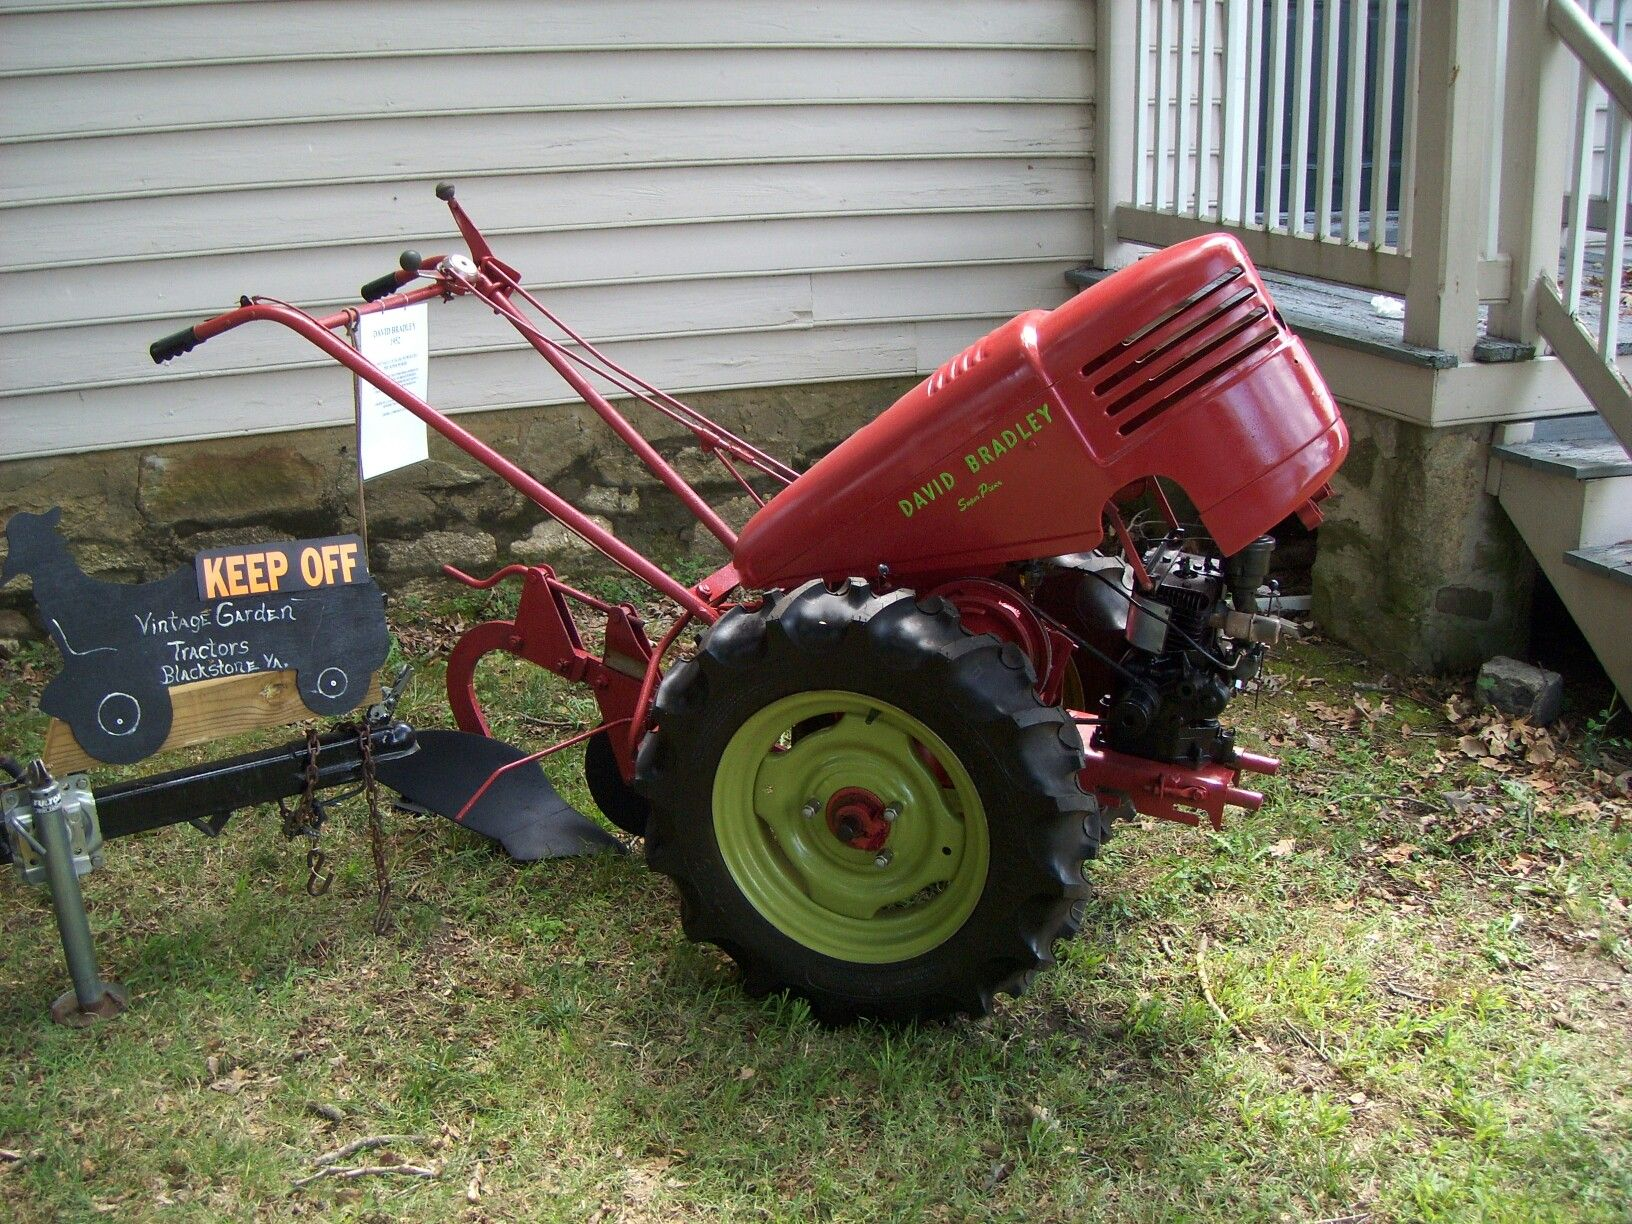 David Bradley Tractor Antique Engines And Equipment Pinterest Tractor And Engine